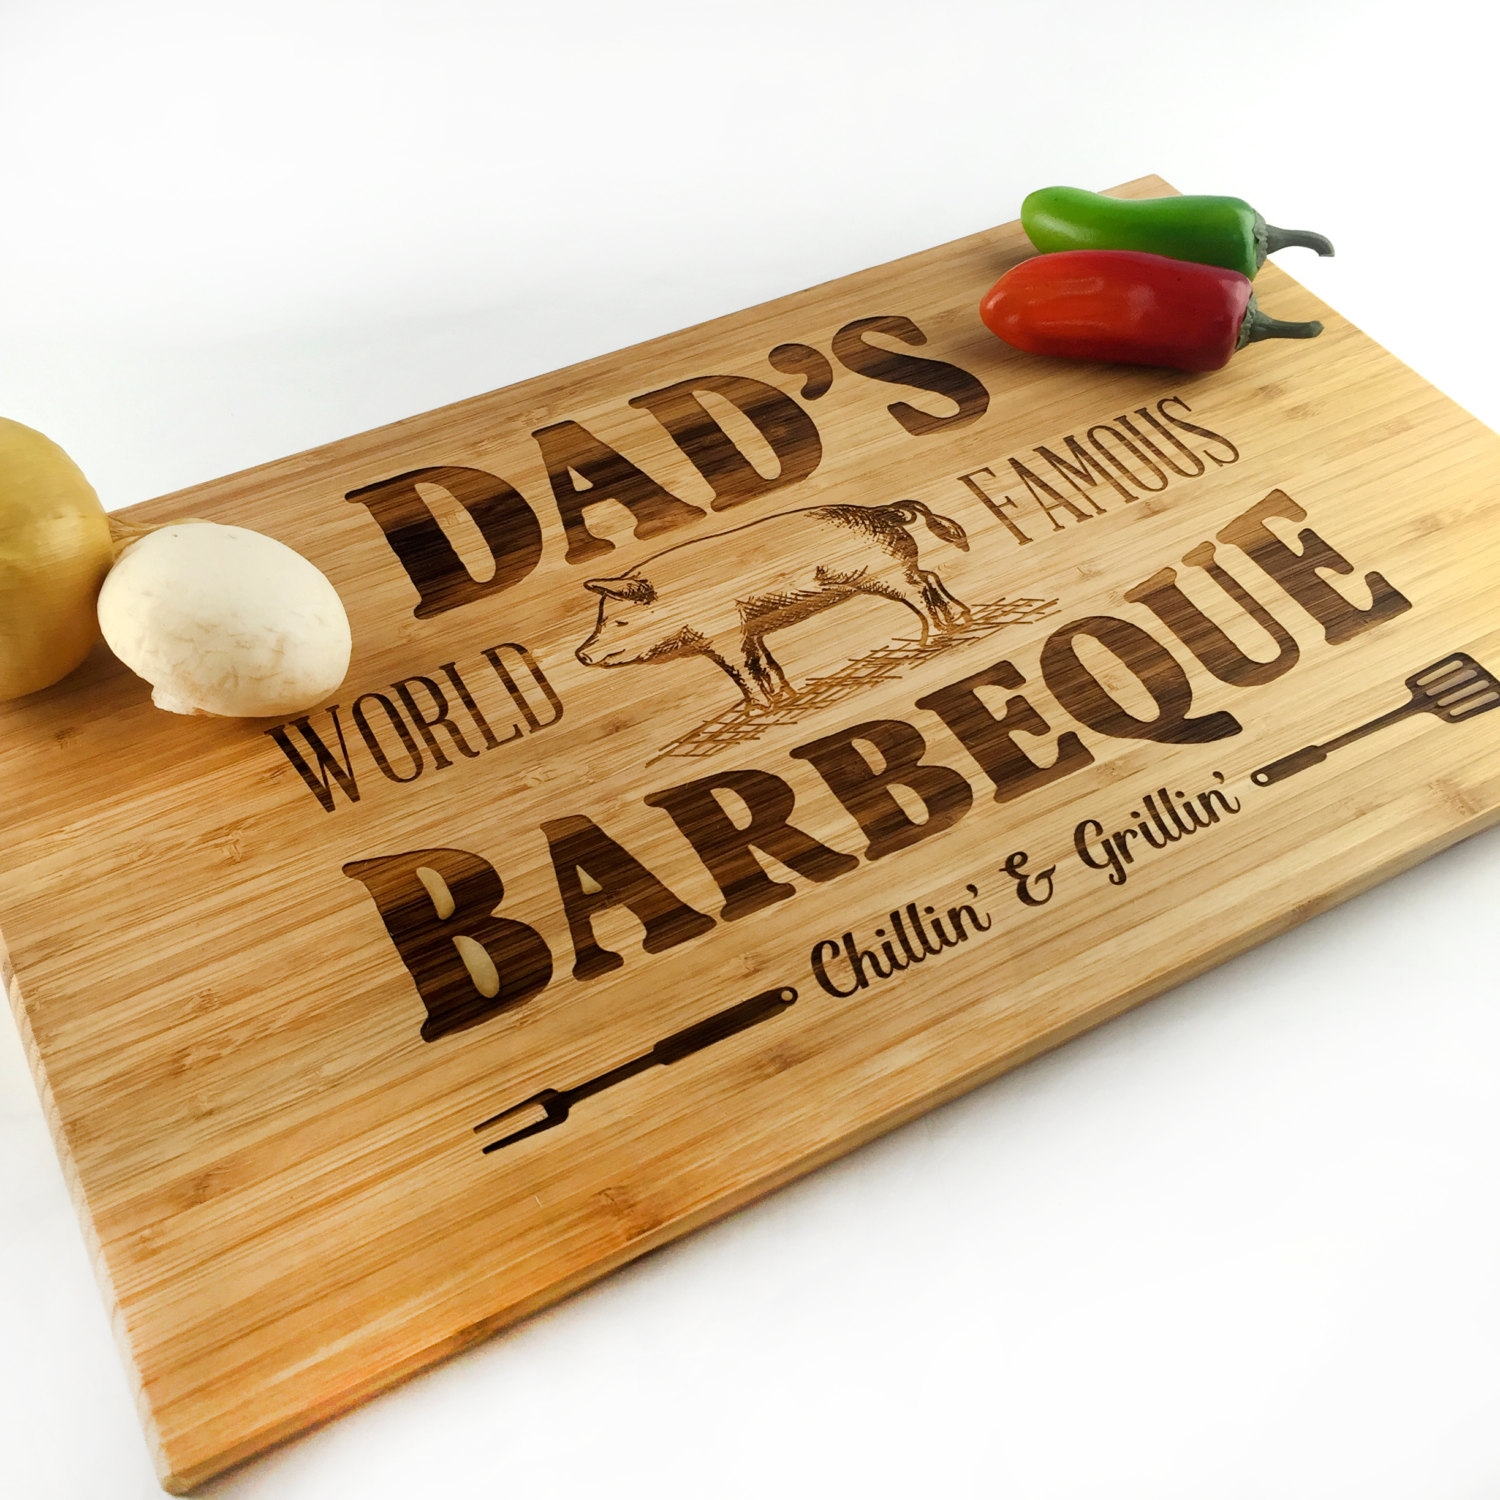 DIY Father's Day Gift made from wood- cutting board